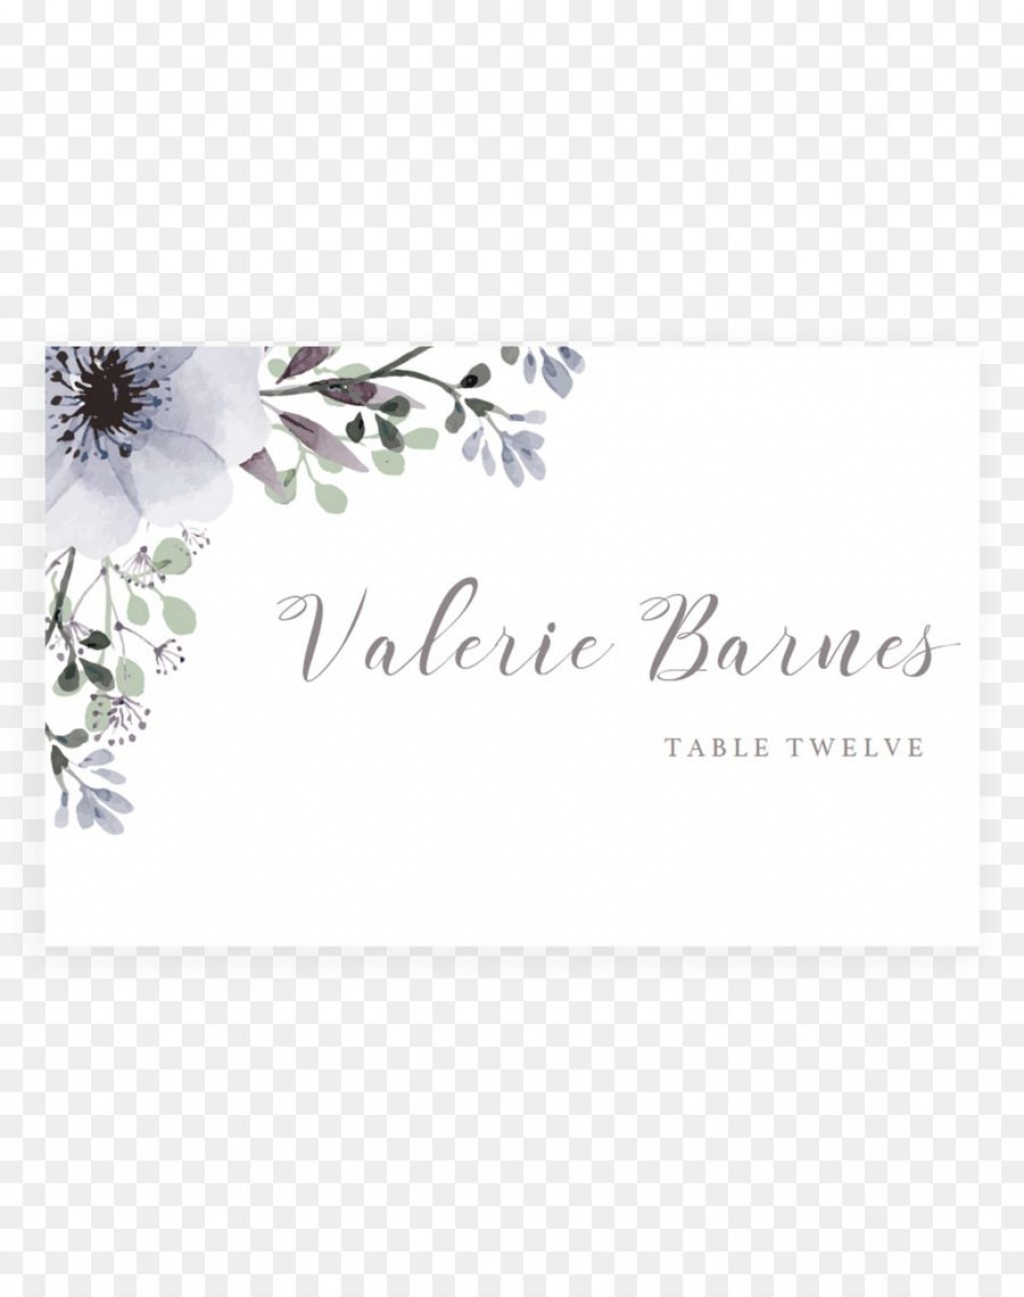 009 Unusual Free Place Card Template High Resolution  Wedding Download Christma Name WordLarge